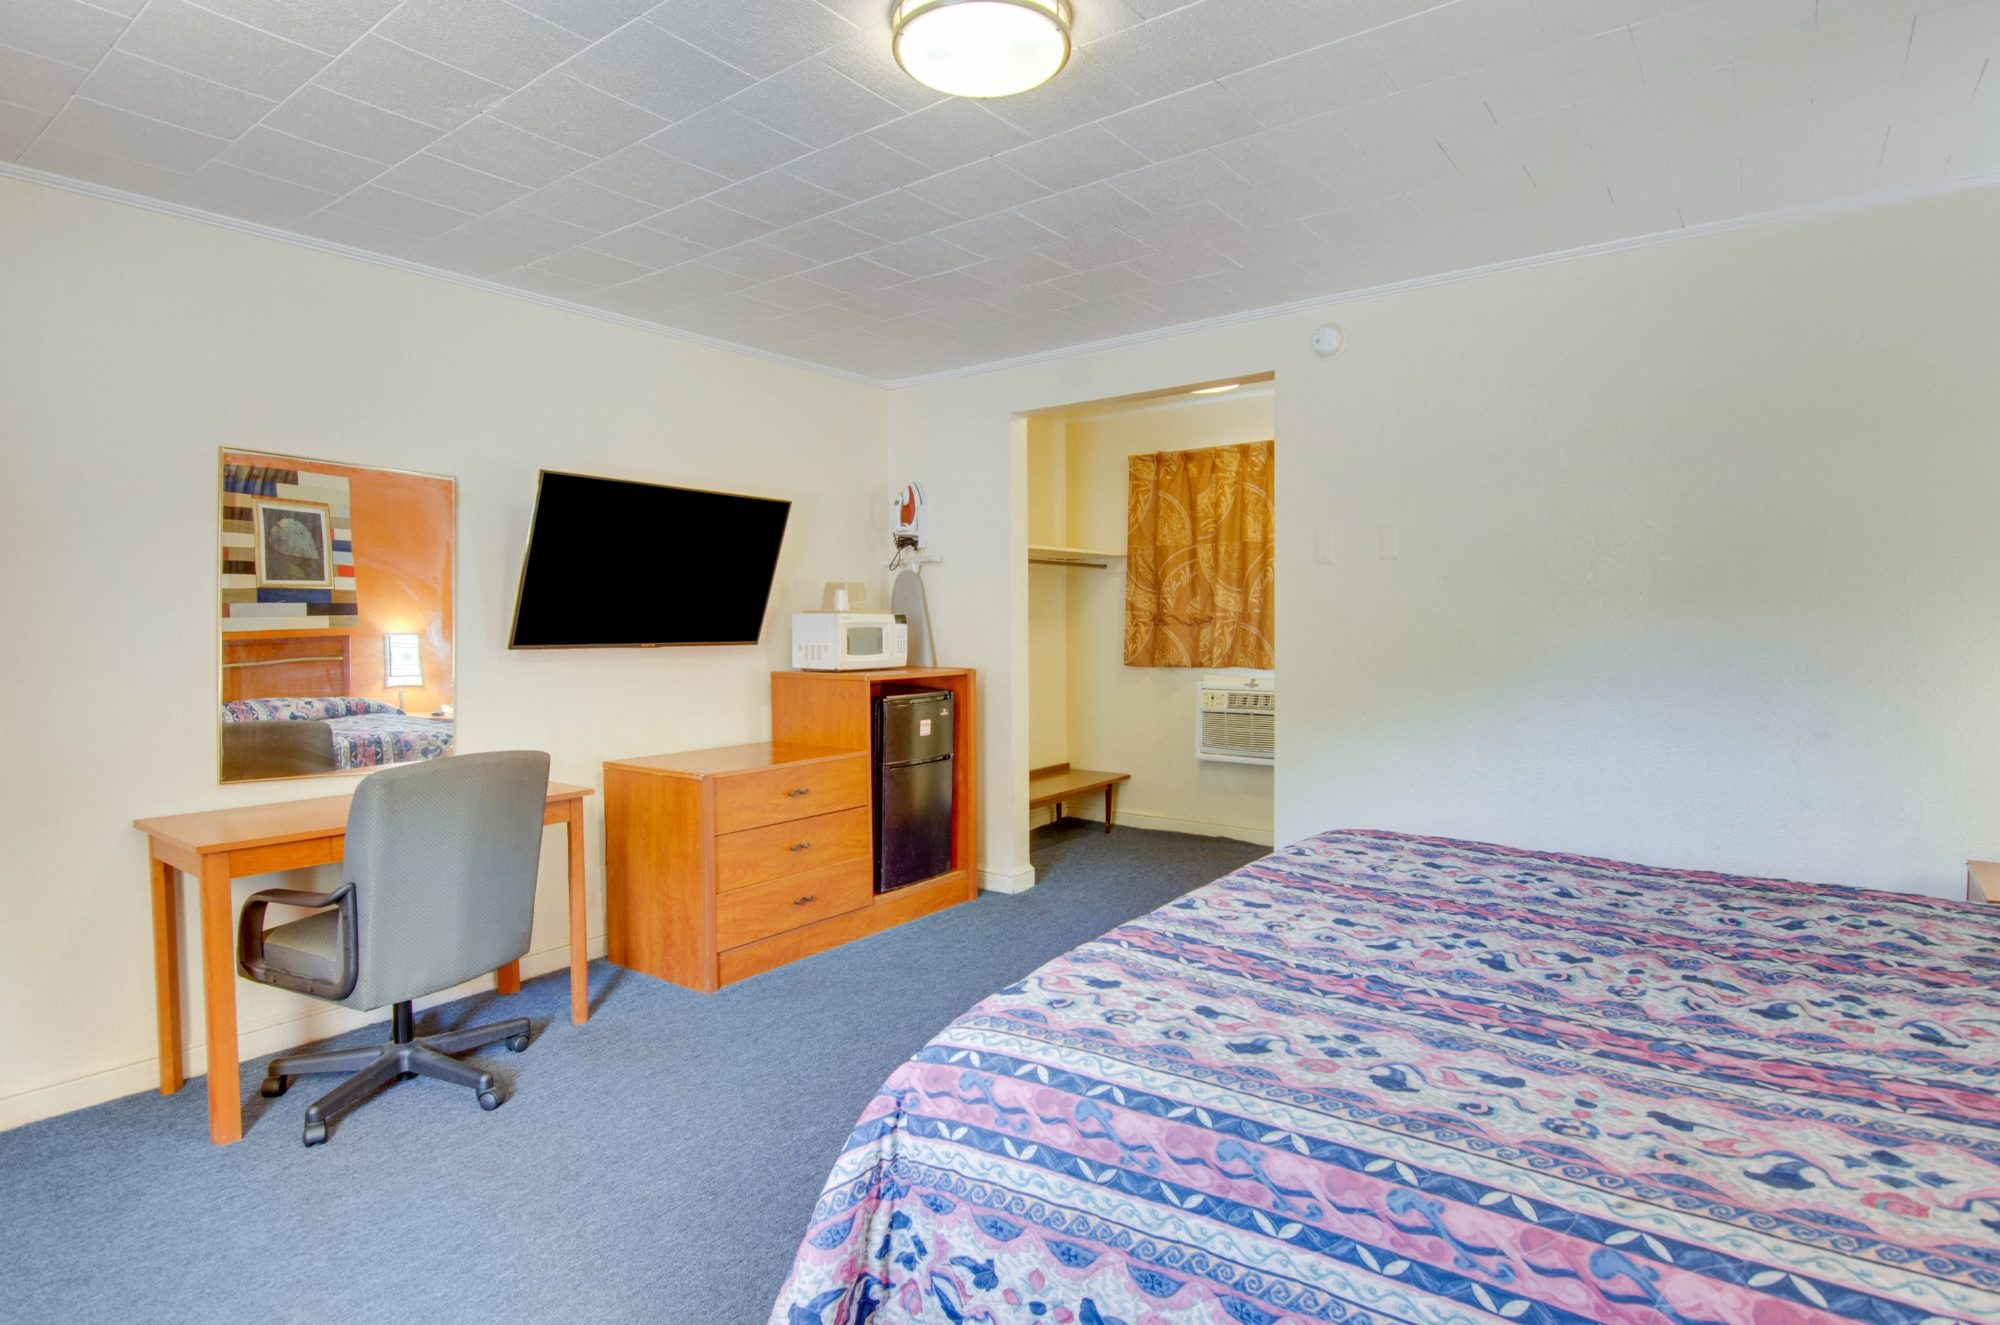 King bed, desk and office chair, wall mounted mirror, flat screen tv and ironing board and iron, wooden drawer unit with fridge and microwave, alcove with hanging rail and shelf, carpet flooring